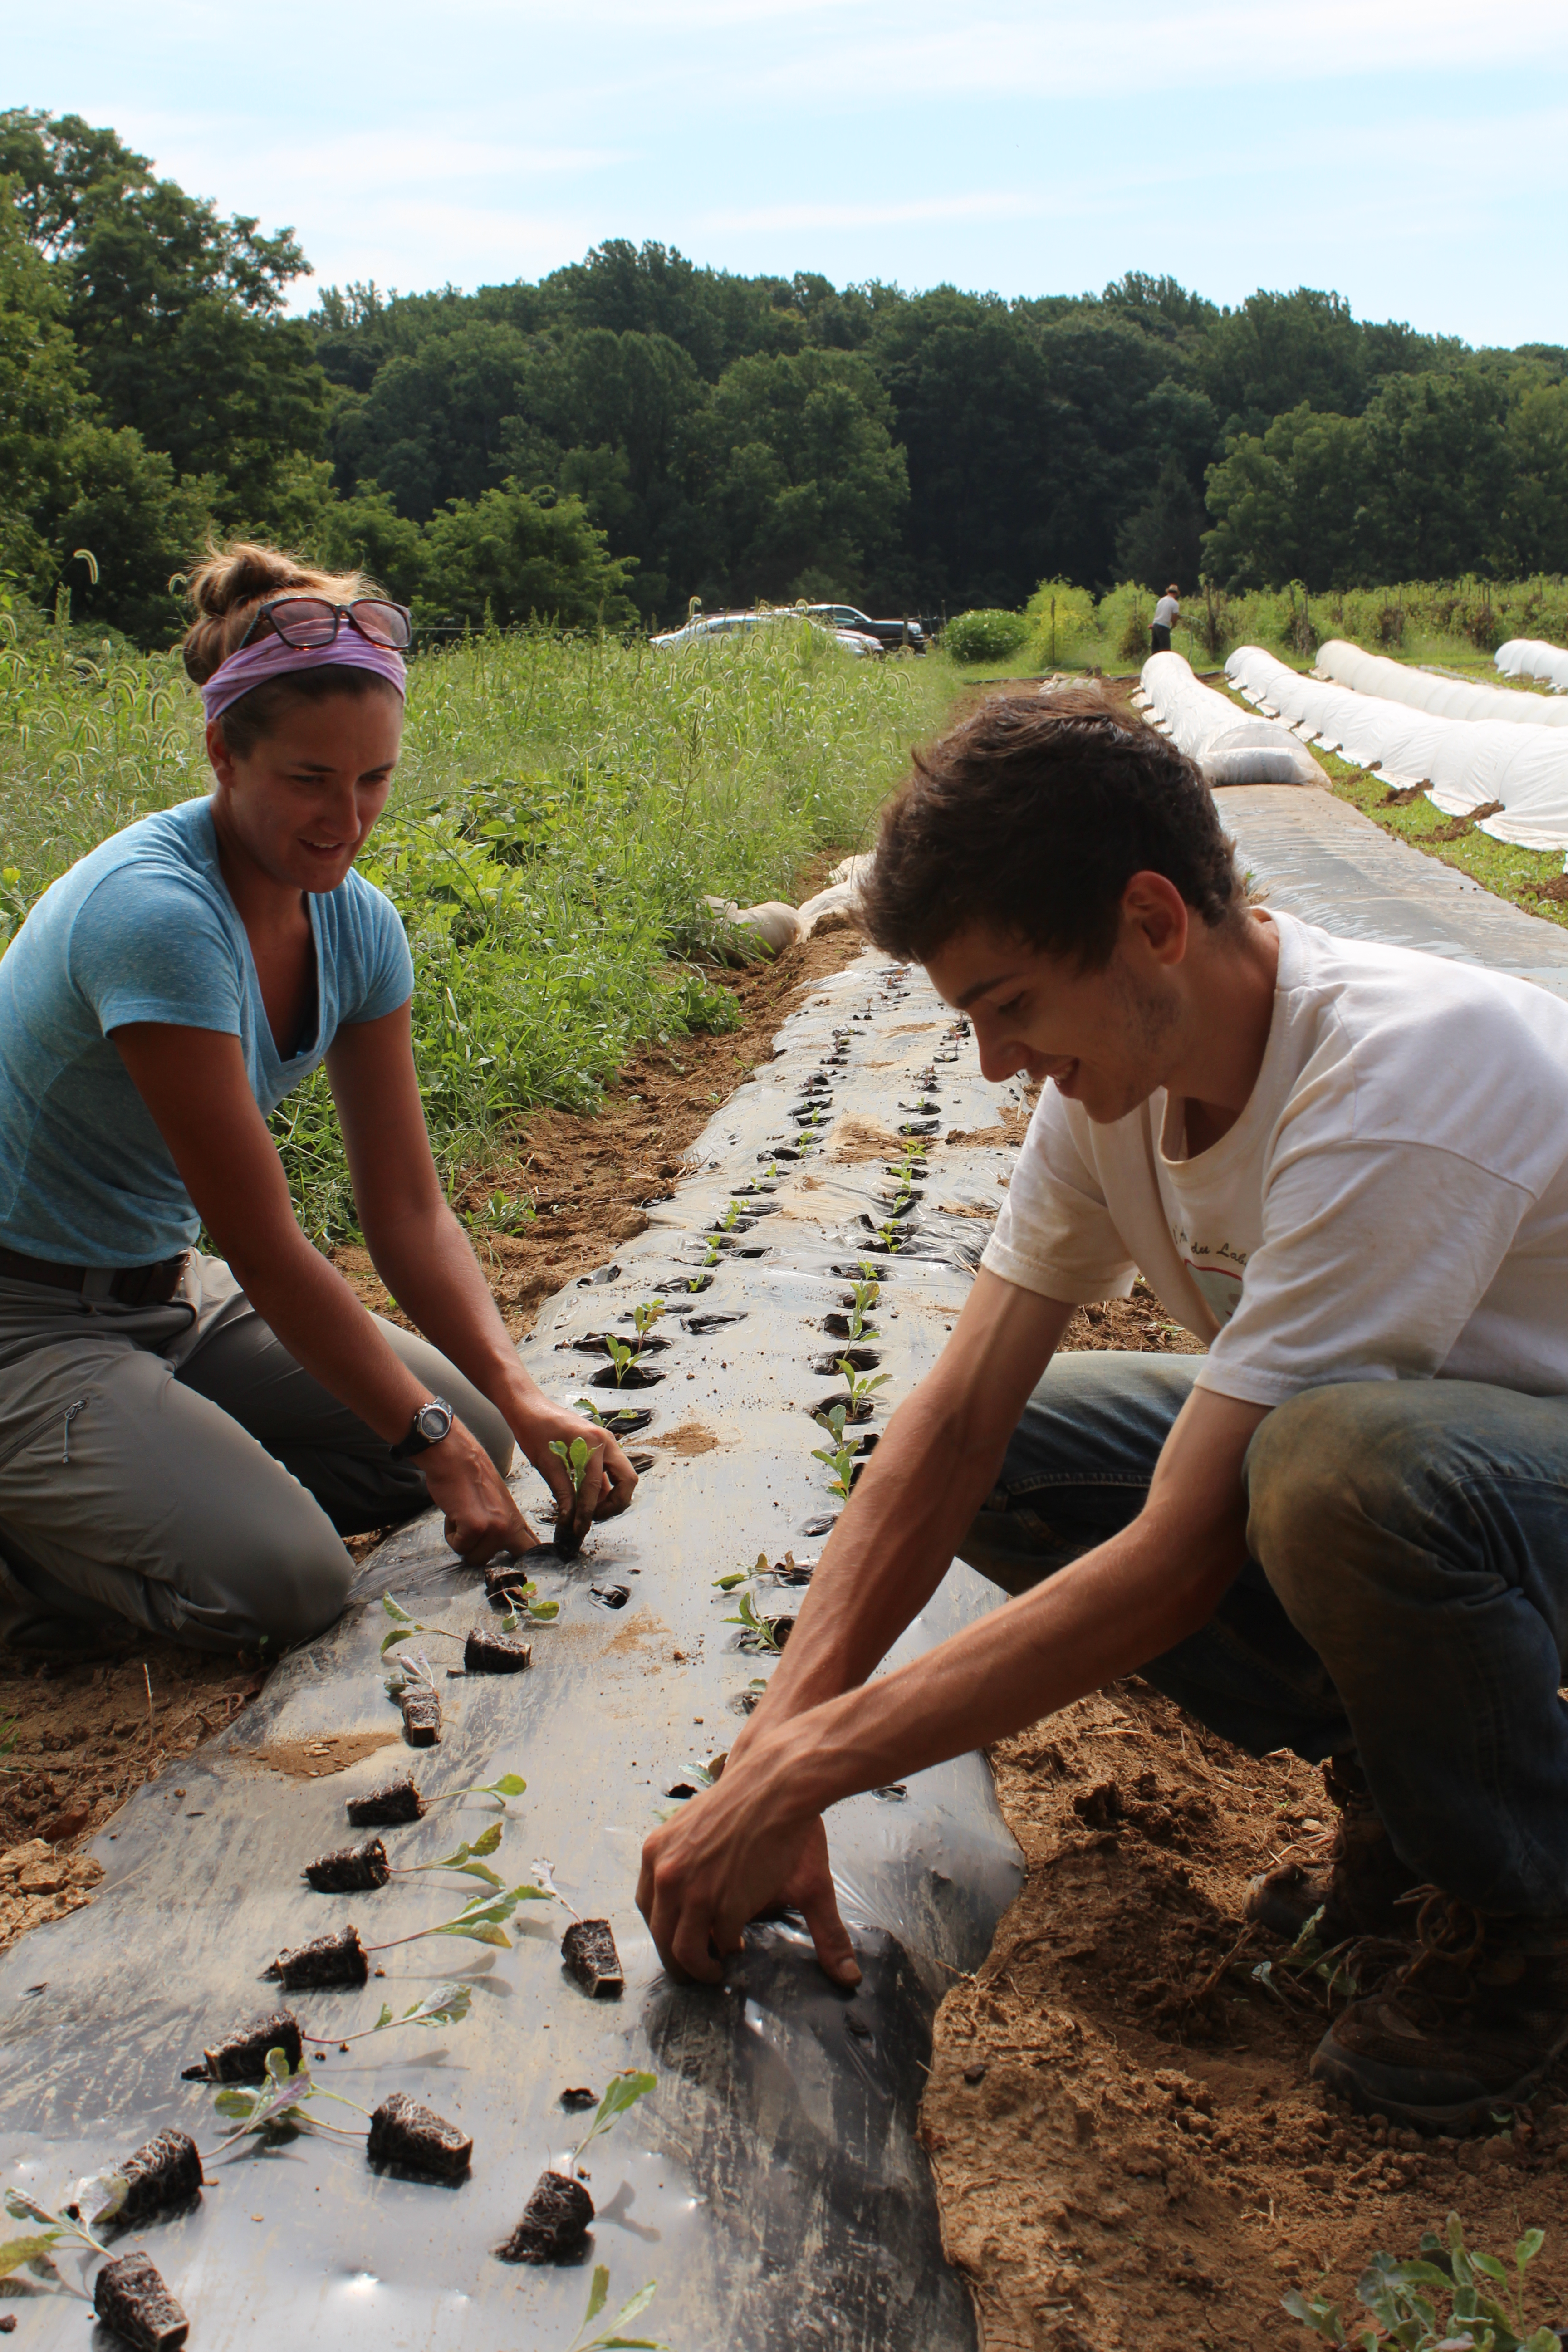 Interns Molly and Fabien plant seedlings in prepared raised beds at Rushton Farm.